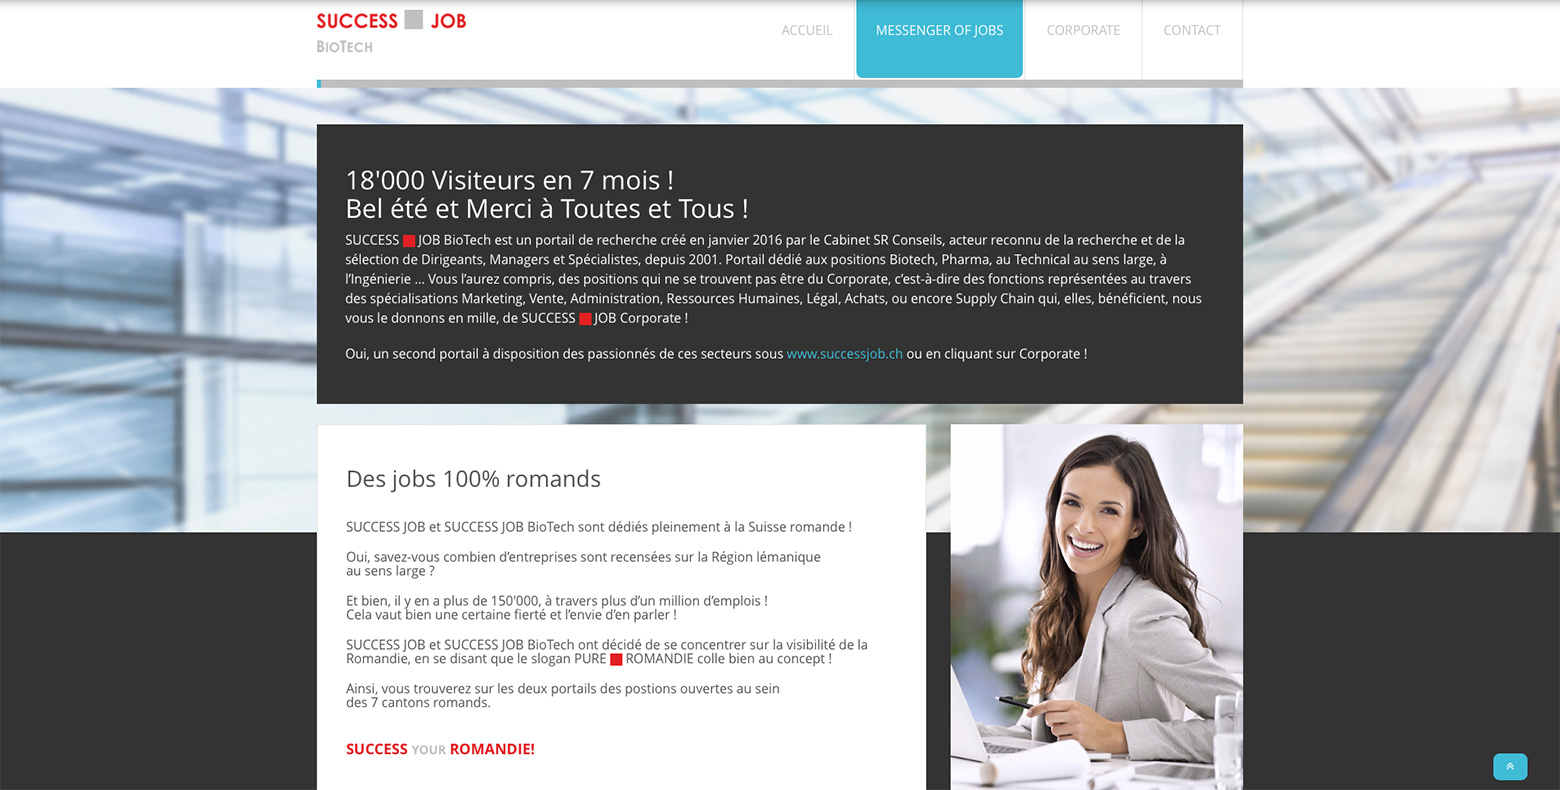 Success Job WNG Agence Digitale